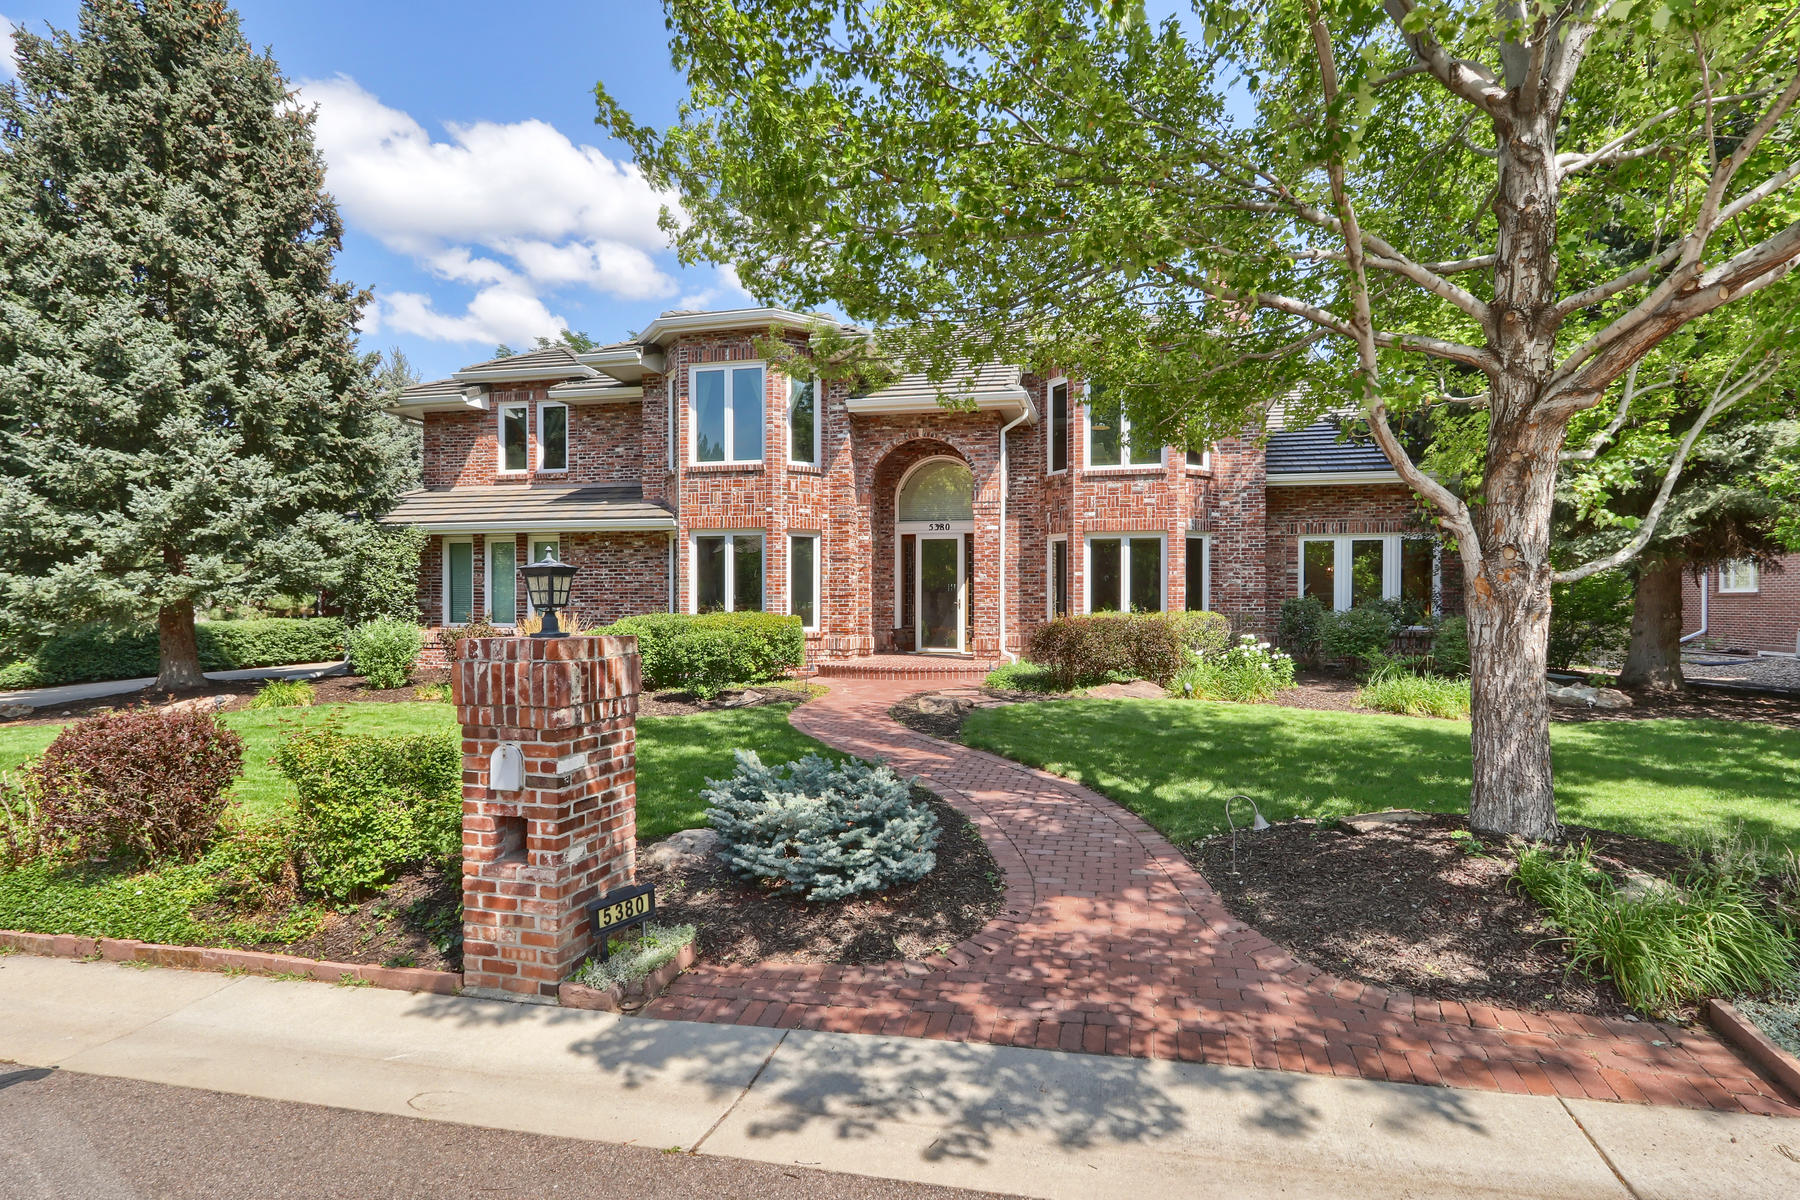 Single Family Homes for Active at Lovely home with beautiful curb appeal, on one of the most desirable streets. 5380 S Fulton Ct Greenwood Village, Colorado 80111 United States